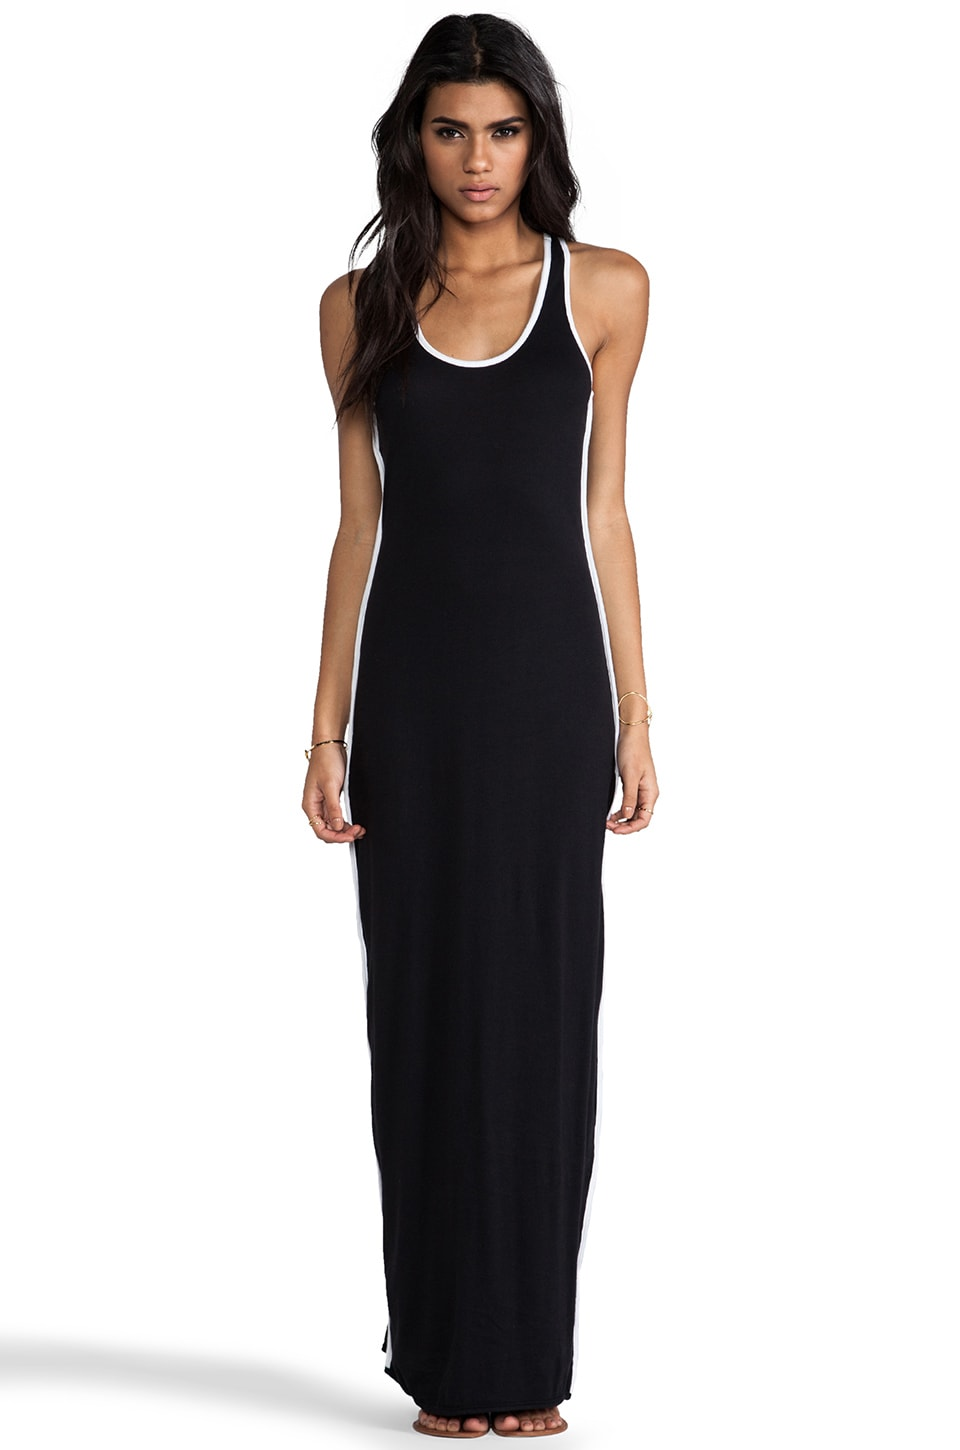 Bobi Light Weight Colorblock Maxi Dress in Black & White